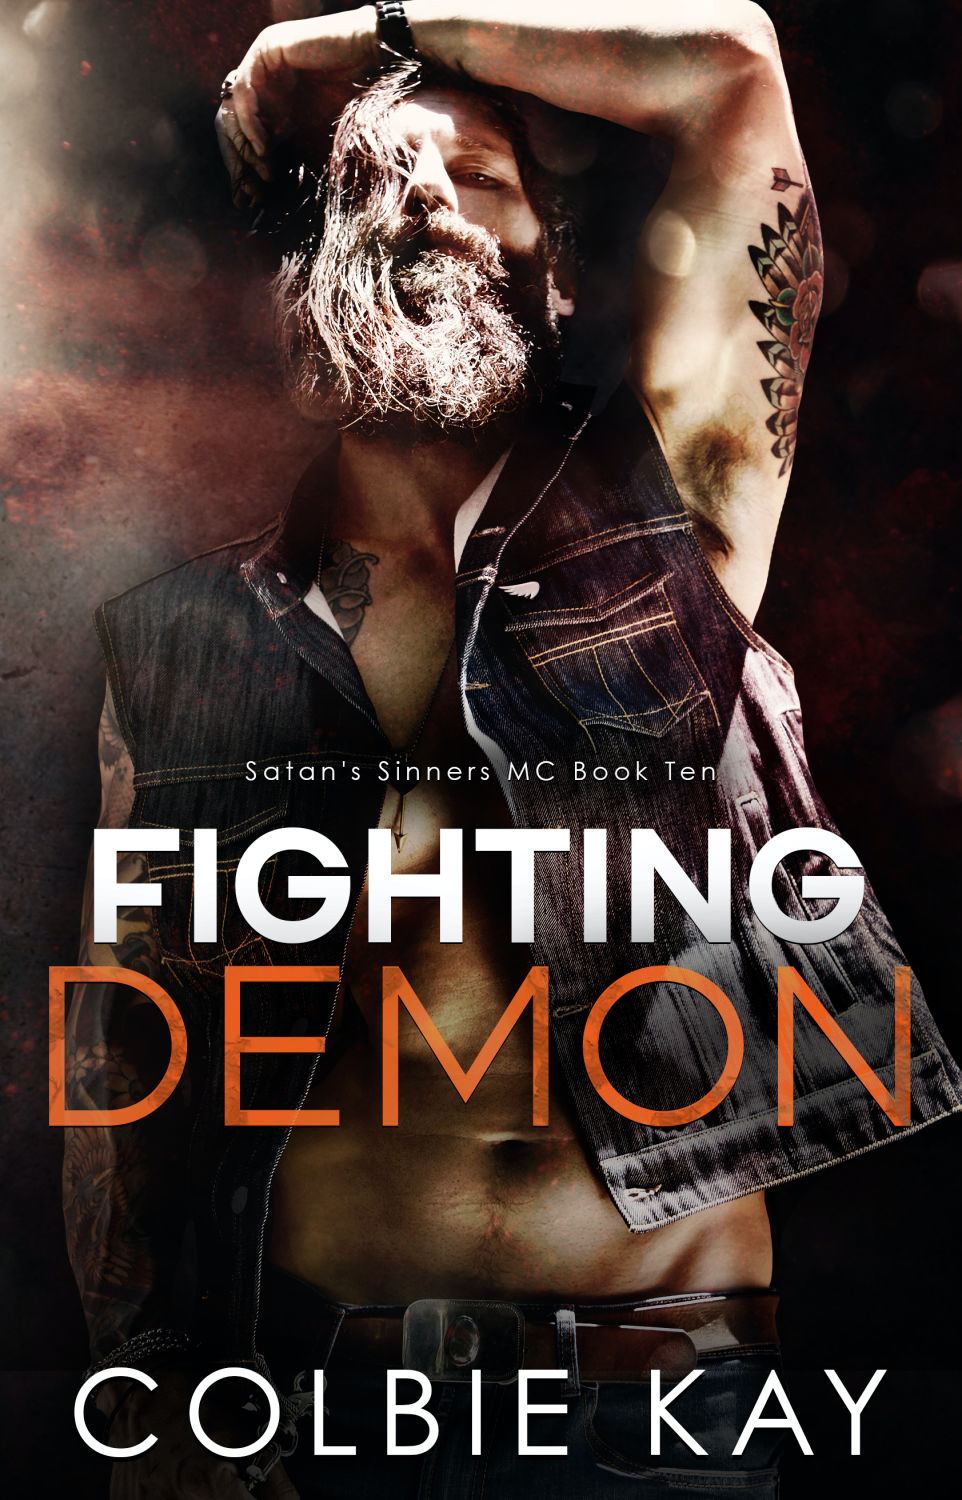 FIGHTING DEMON